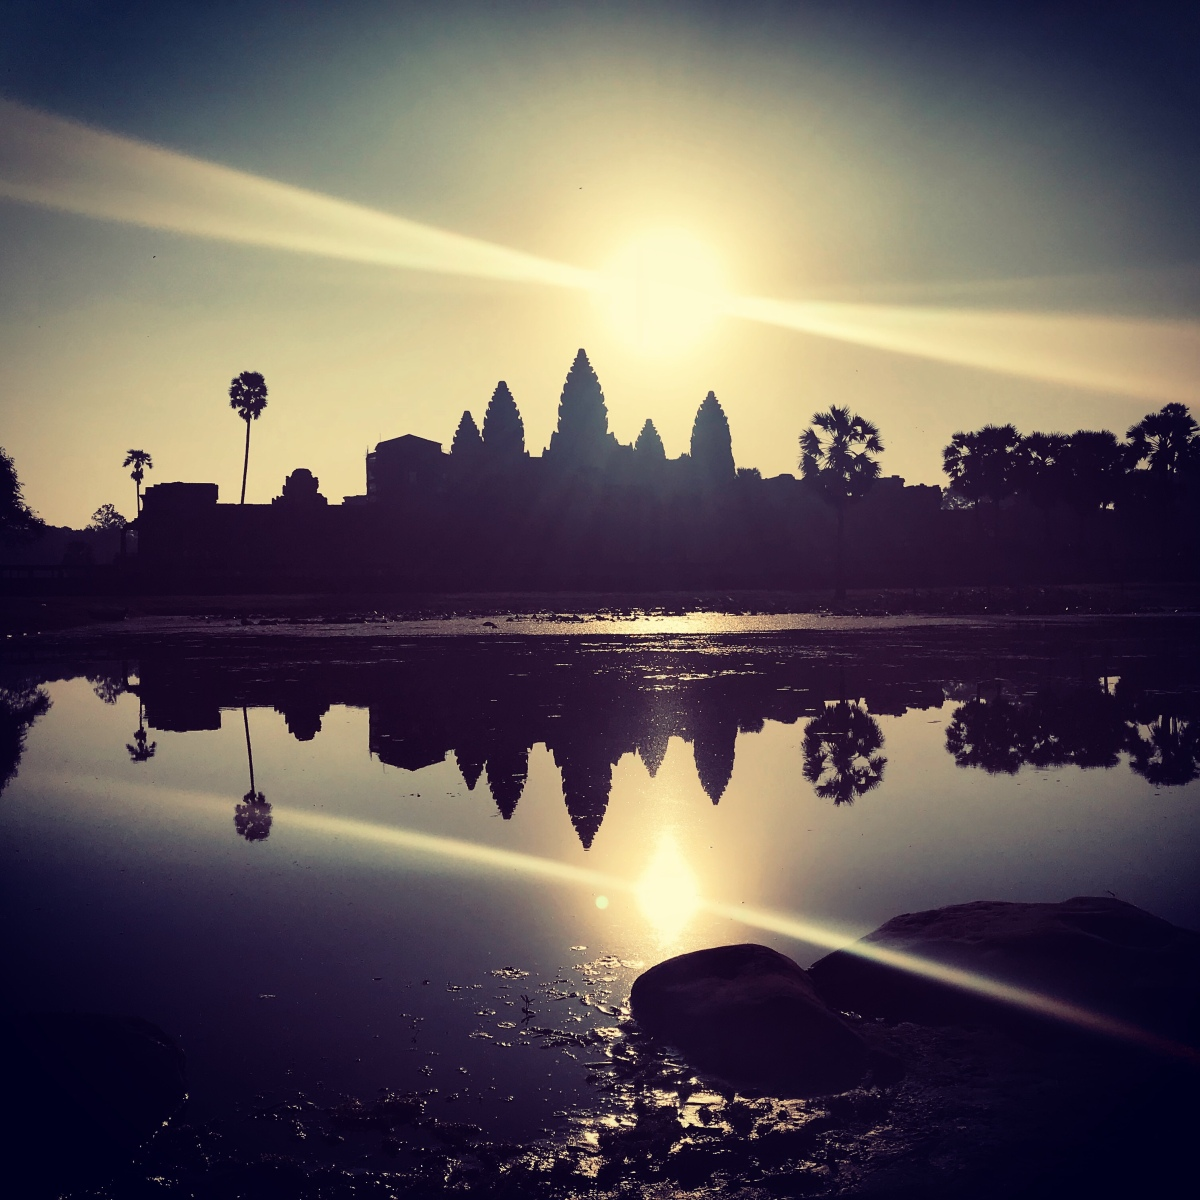 Cambodia - The dark + The wonderful.